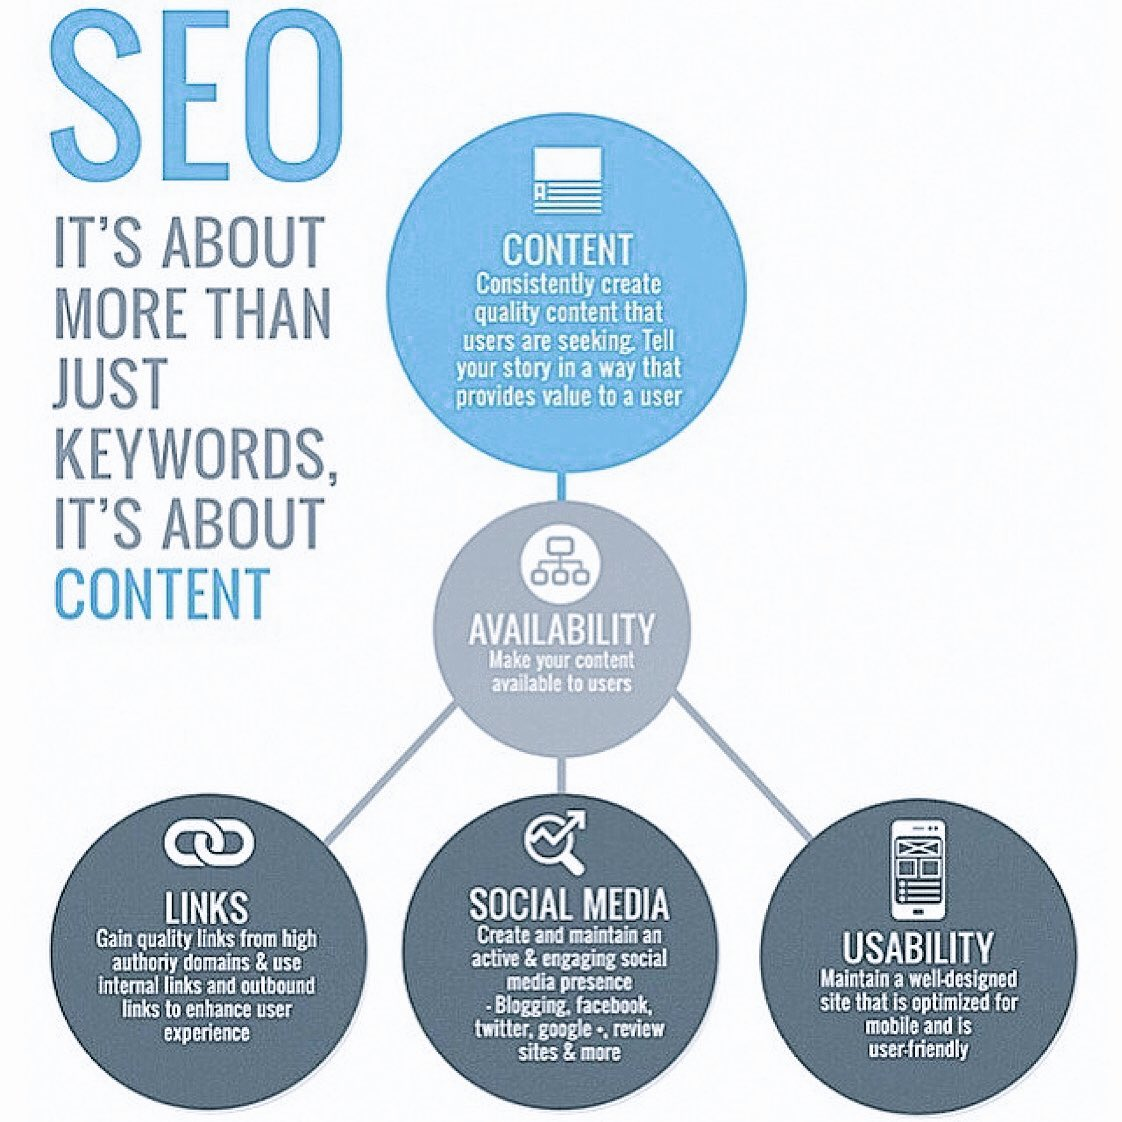 #SEO Is More Than Just Keywords  #mgvip #defstar5 #makeyourownlane #marketing #growthhacking #innovation  #socialmedia #SEO #keyword <br>http://pic.twitter.com/88vSp1u0VJ